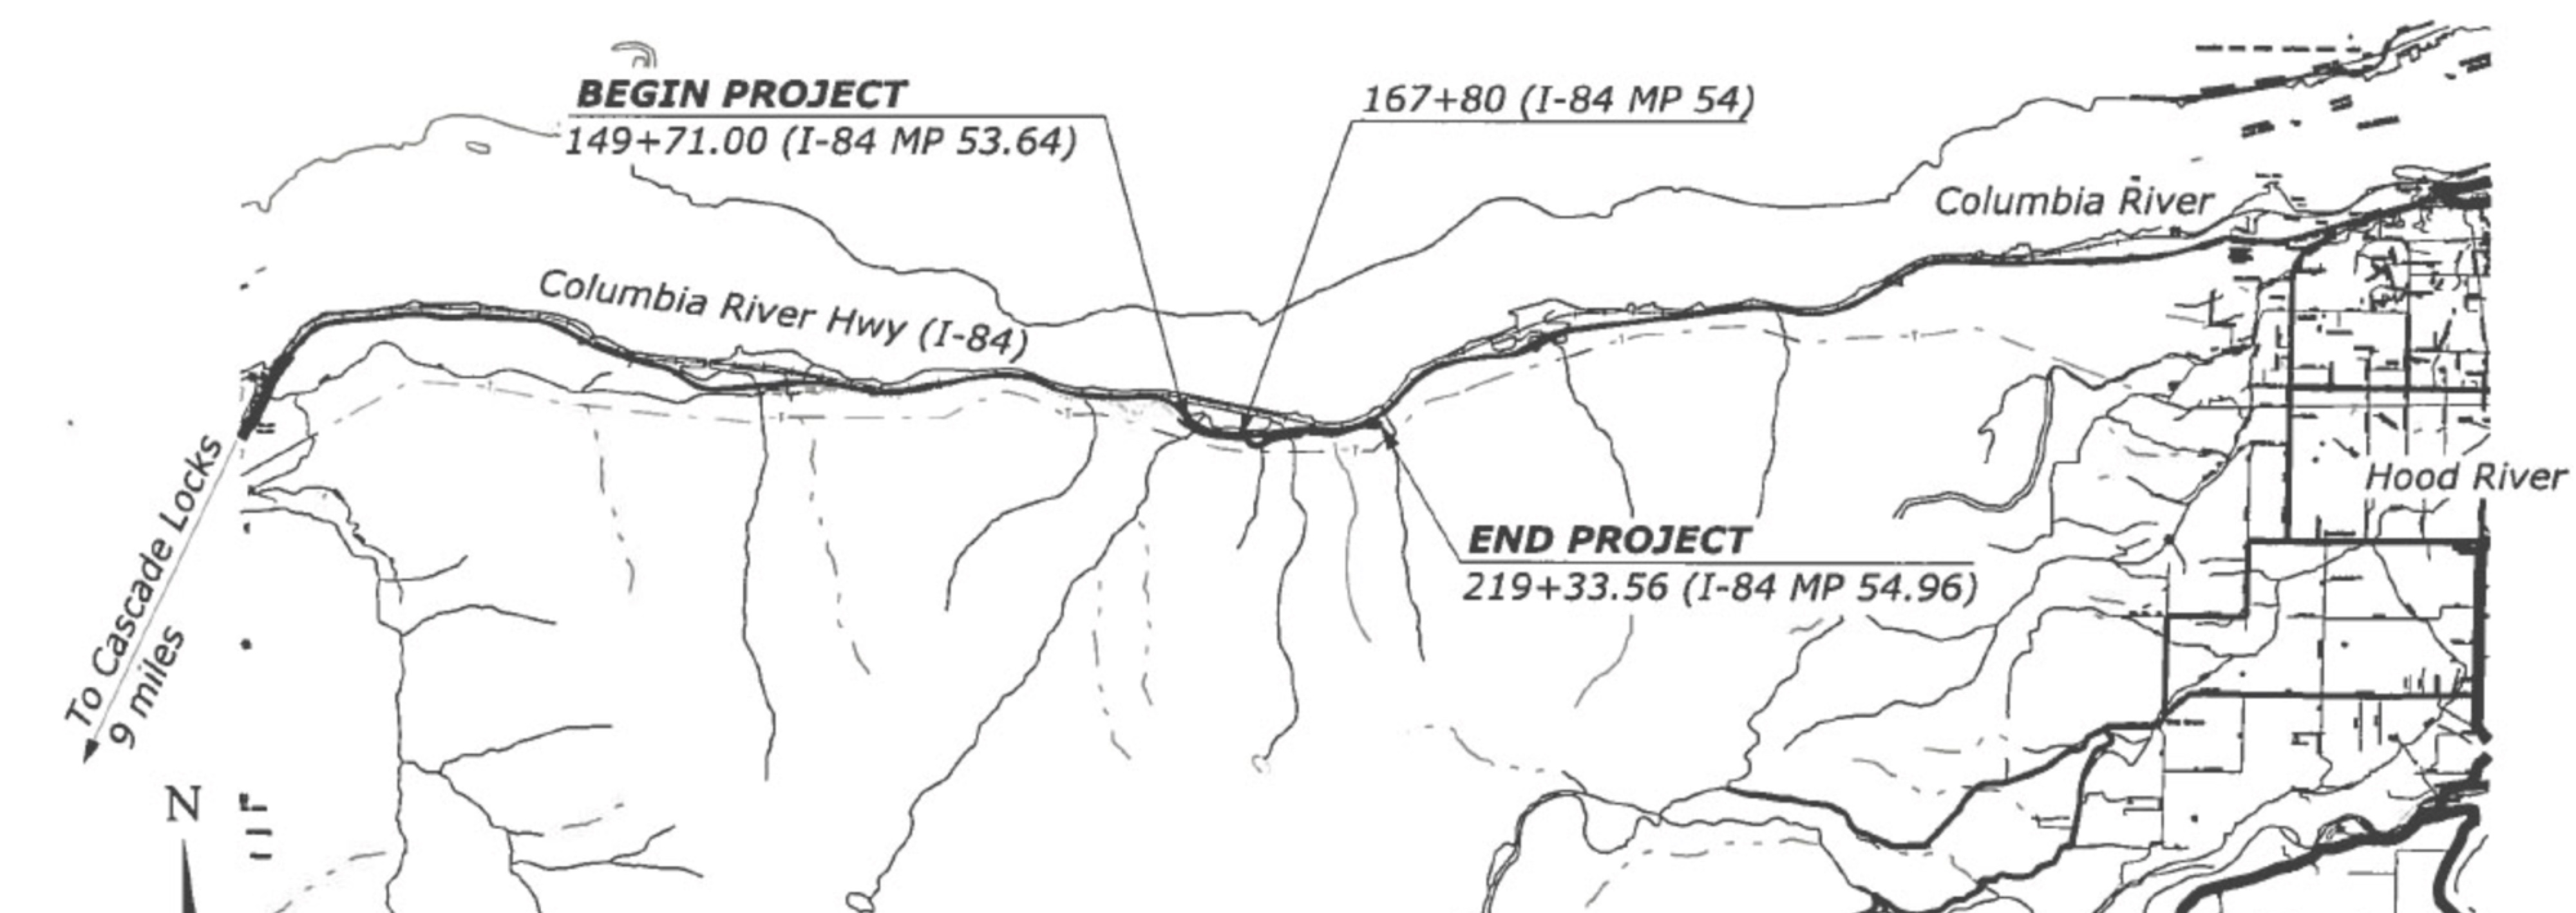 Construction begins on 1.3 mile section of Historic Columbia River on map of gorge amphitheatre, map of columbia basin, map of columbia county, map of white river, map of st lawrence river, tanner creek columbia river gorge, map of john day river, map of missouri river, mt. hood columbia river gorge, map of little river sc, map of ohio river, map of snake river, beacon rock columbia river gorge, map of columbia bar, map of tennessee river, map of red river new mexico, driving the columbia river gorge, map of connecticut river, map of ganges river, multnomah falls columbia river gorge,